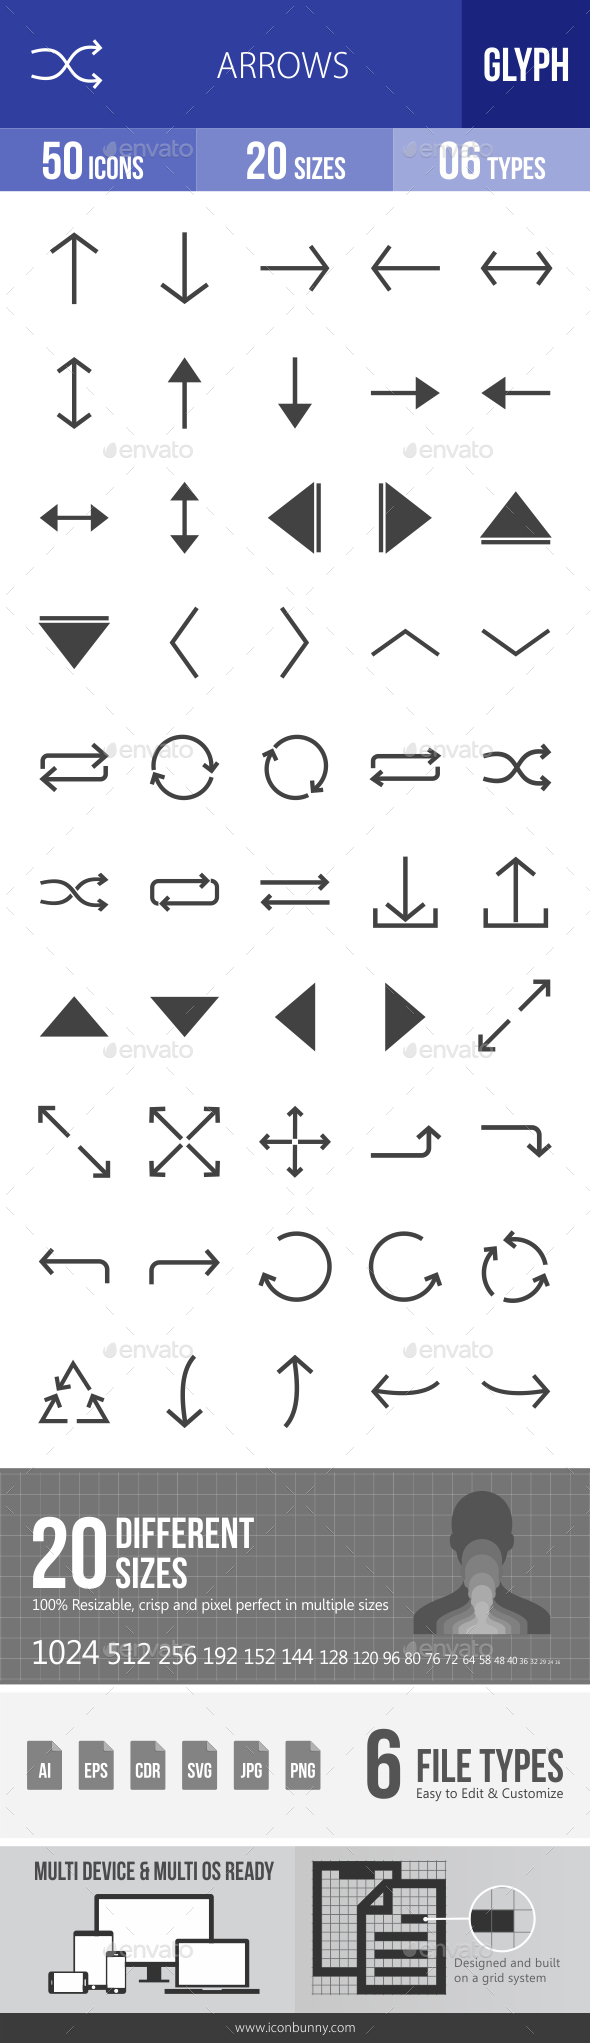 Arrows Glyph Icons - Icons